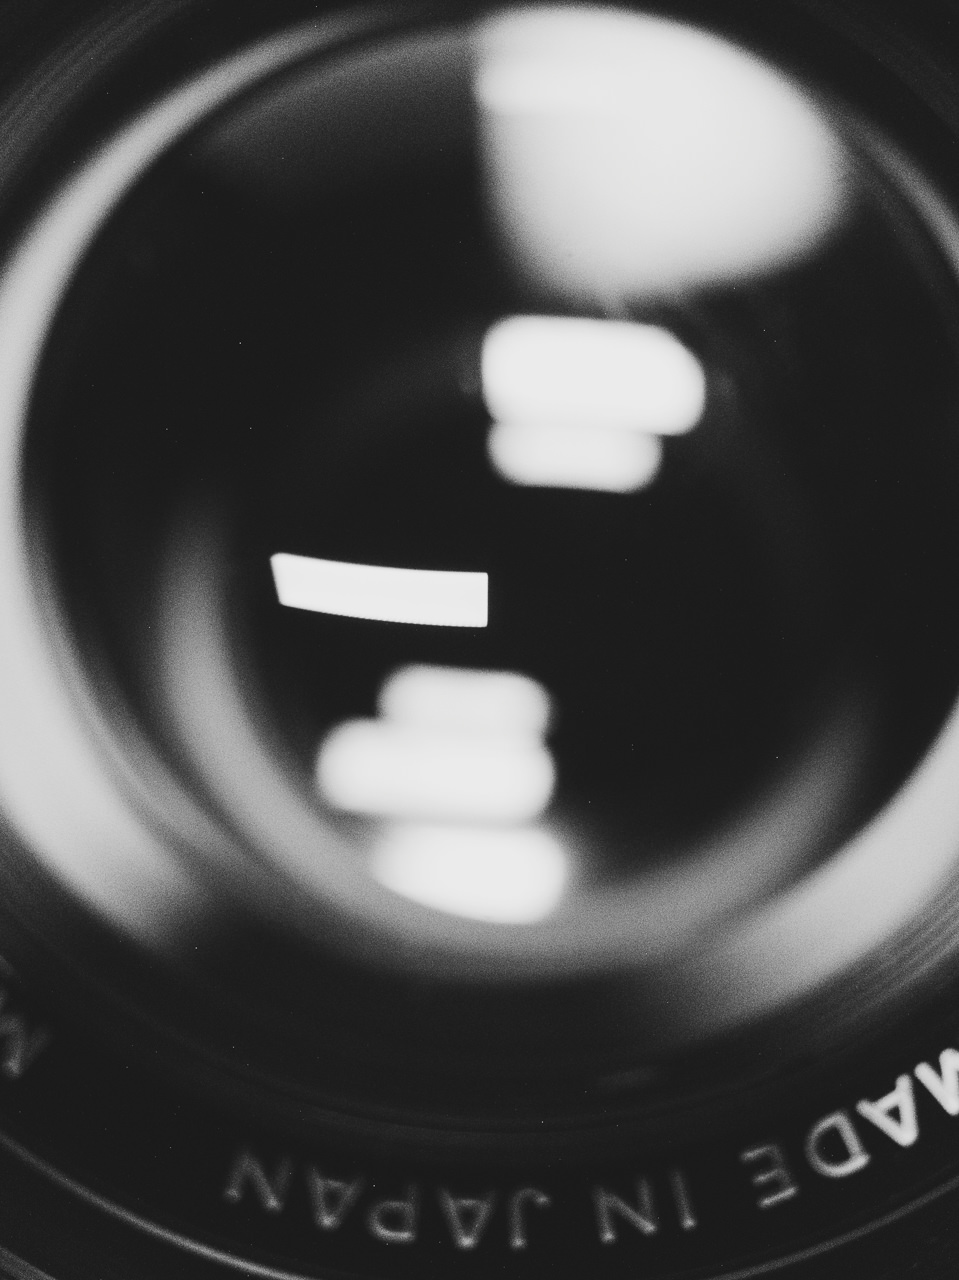 Day 124- 365 Day B&W Photo Challenge - Reflections off of my Minolta 50mm f/1.4 Lens. - Google Pixel 3, Moment Macro Lens, VSCO kx4 preset